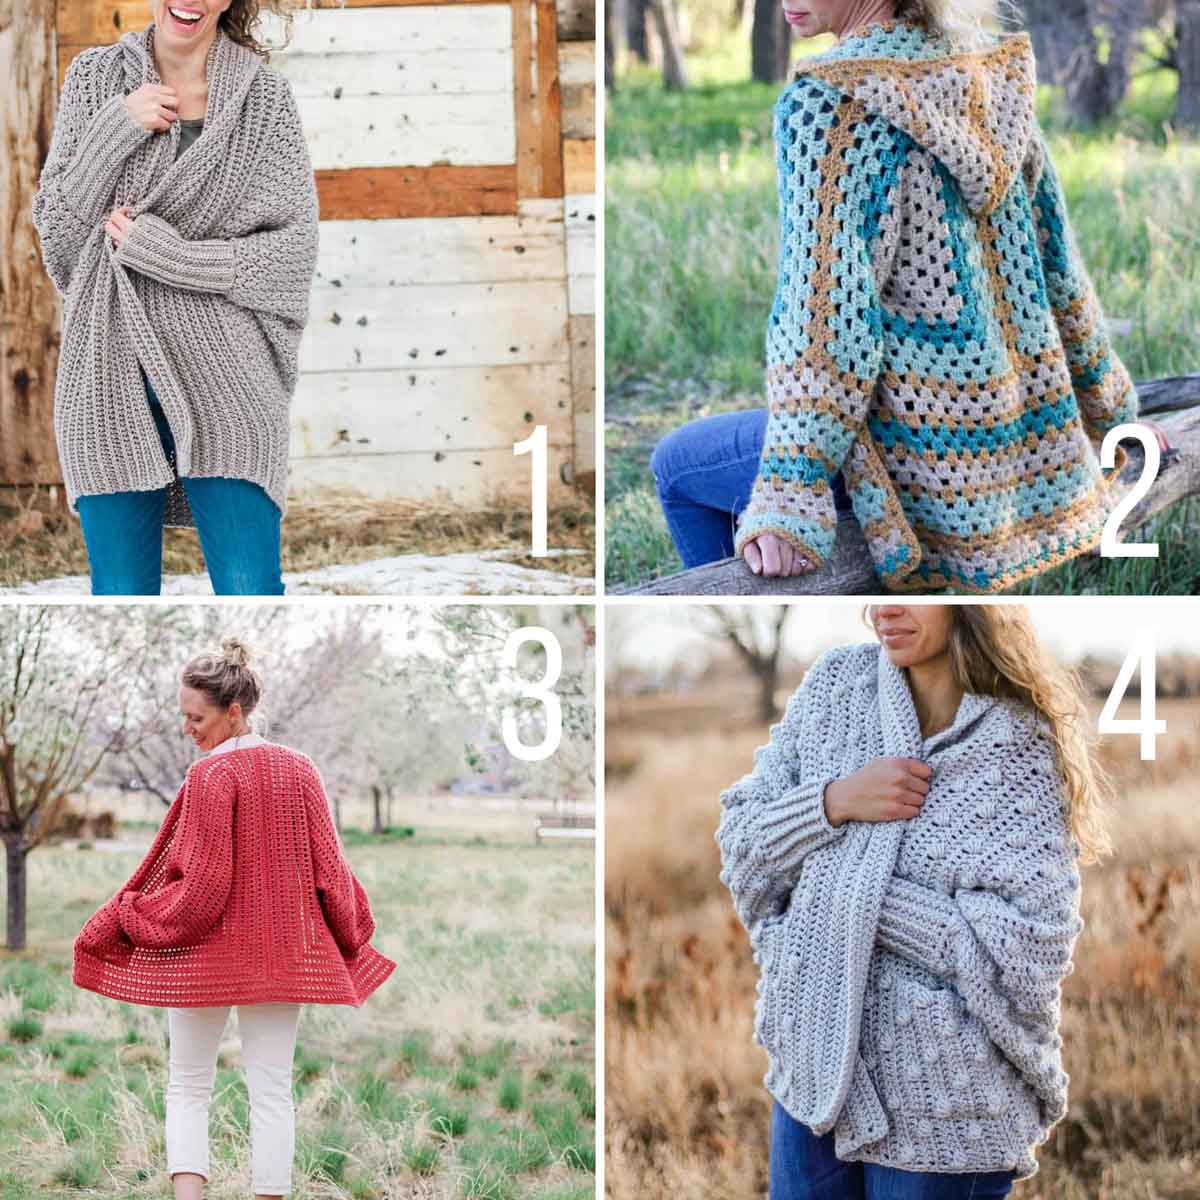 Four free crochet sweater patterns made from simple shapes with easy construction.